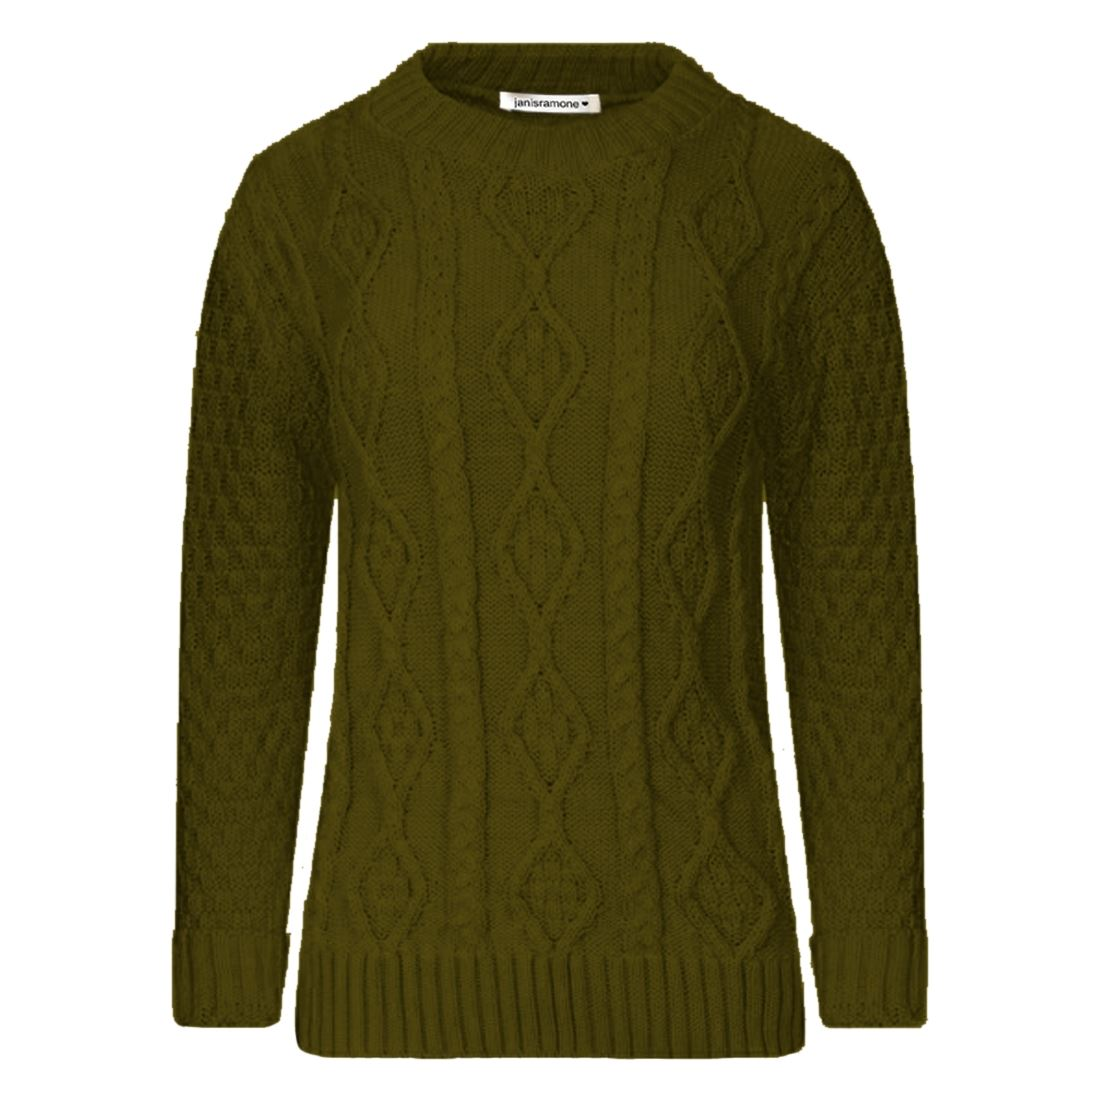 New-Ladies-Long-Sleeve-Chunky-Cable-Knitted-Jumper-Crew-Neck-Winter-Sweater-Top